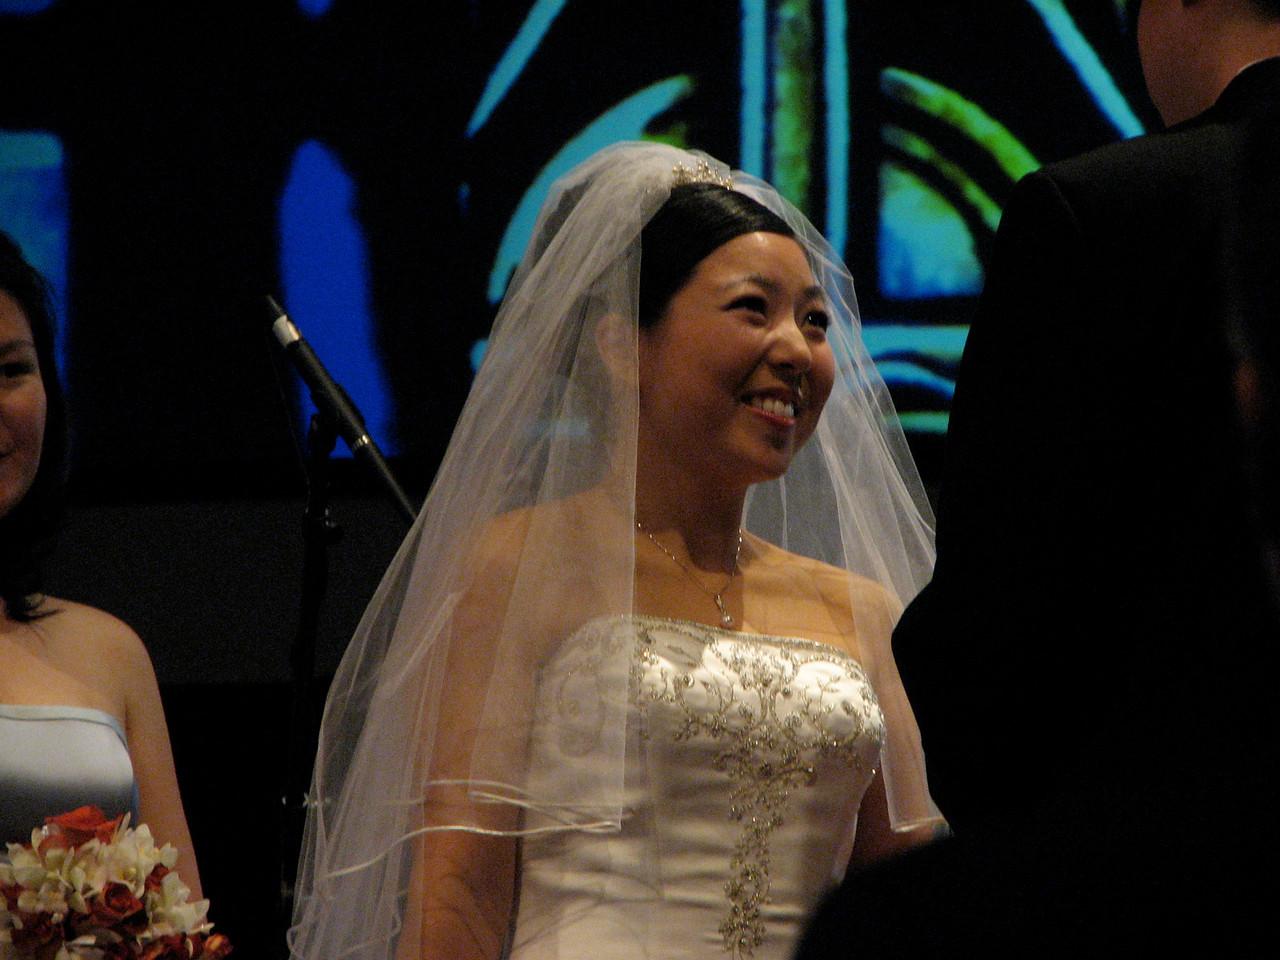 2007 05 19 Sat - The bride Cynthia Cheung 1